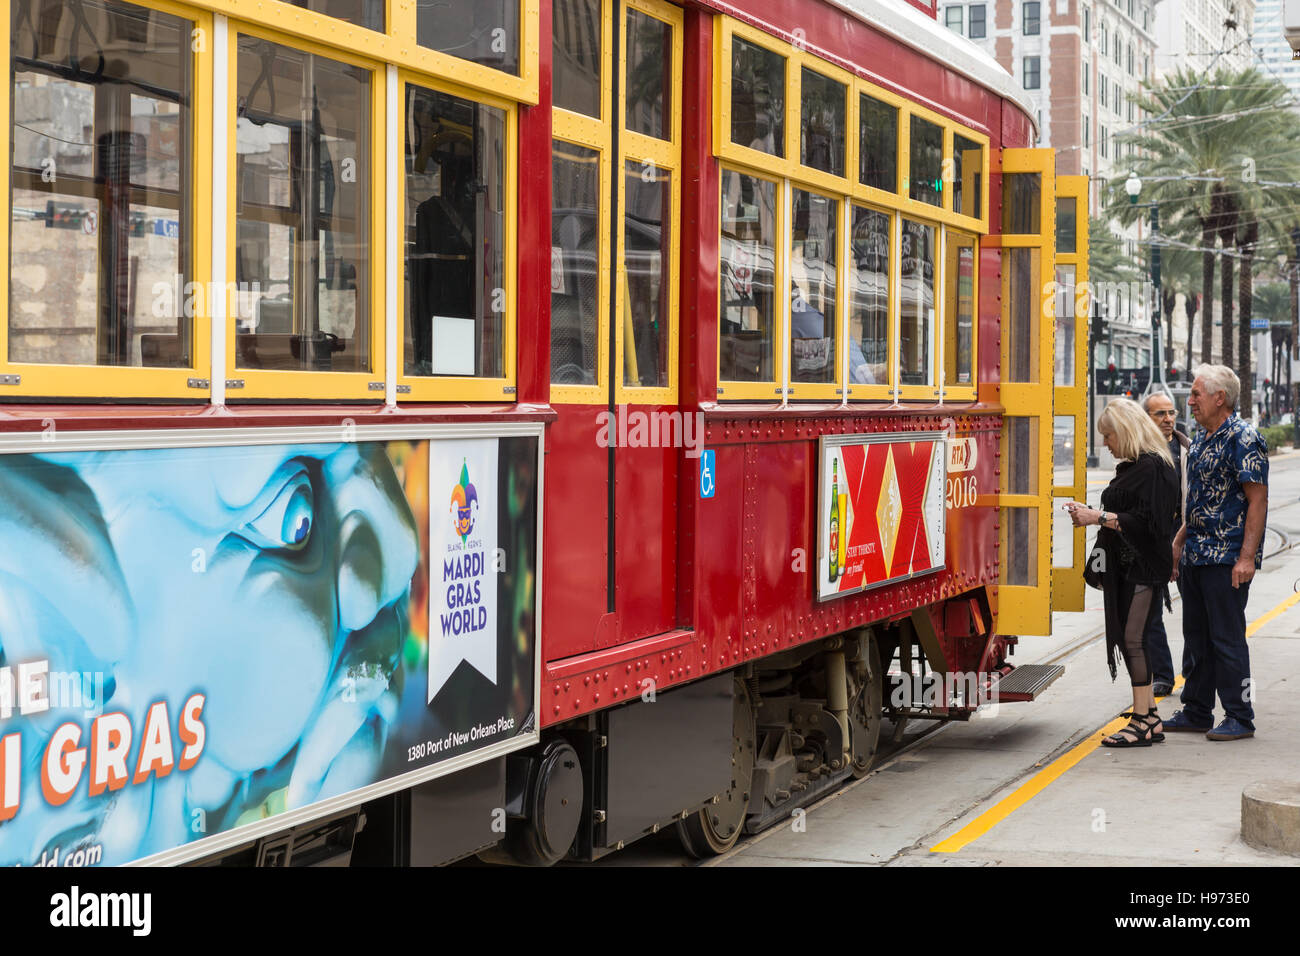 Passengers board an RTA streetcar on Canal Street in New Orleans, Louisiana. - Stock Image